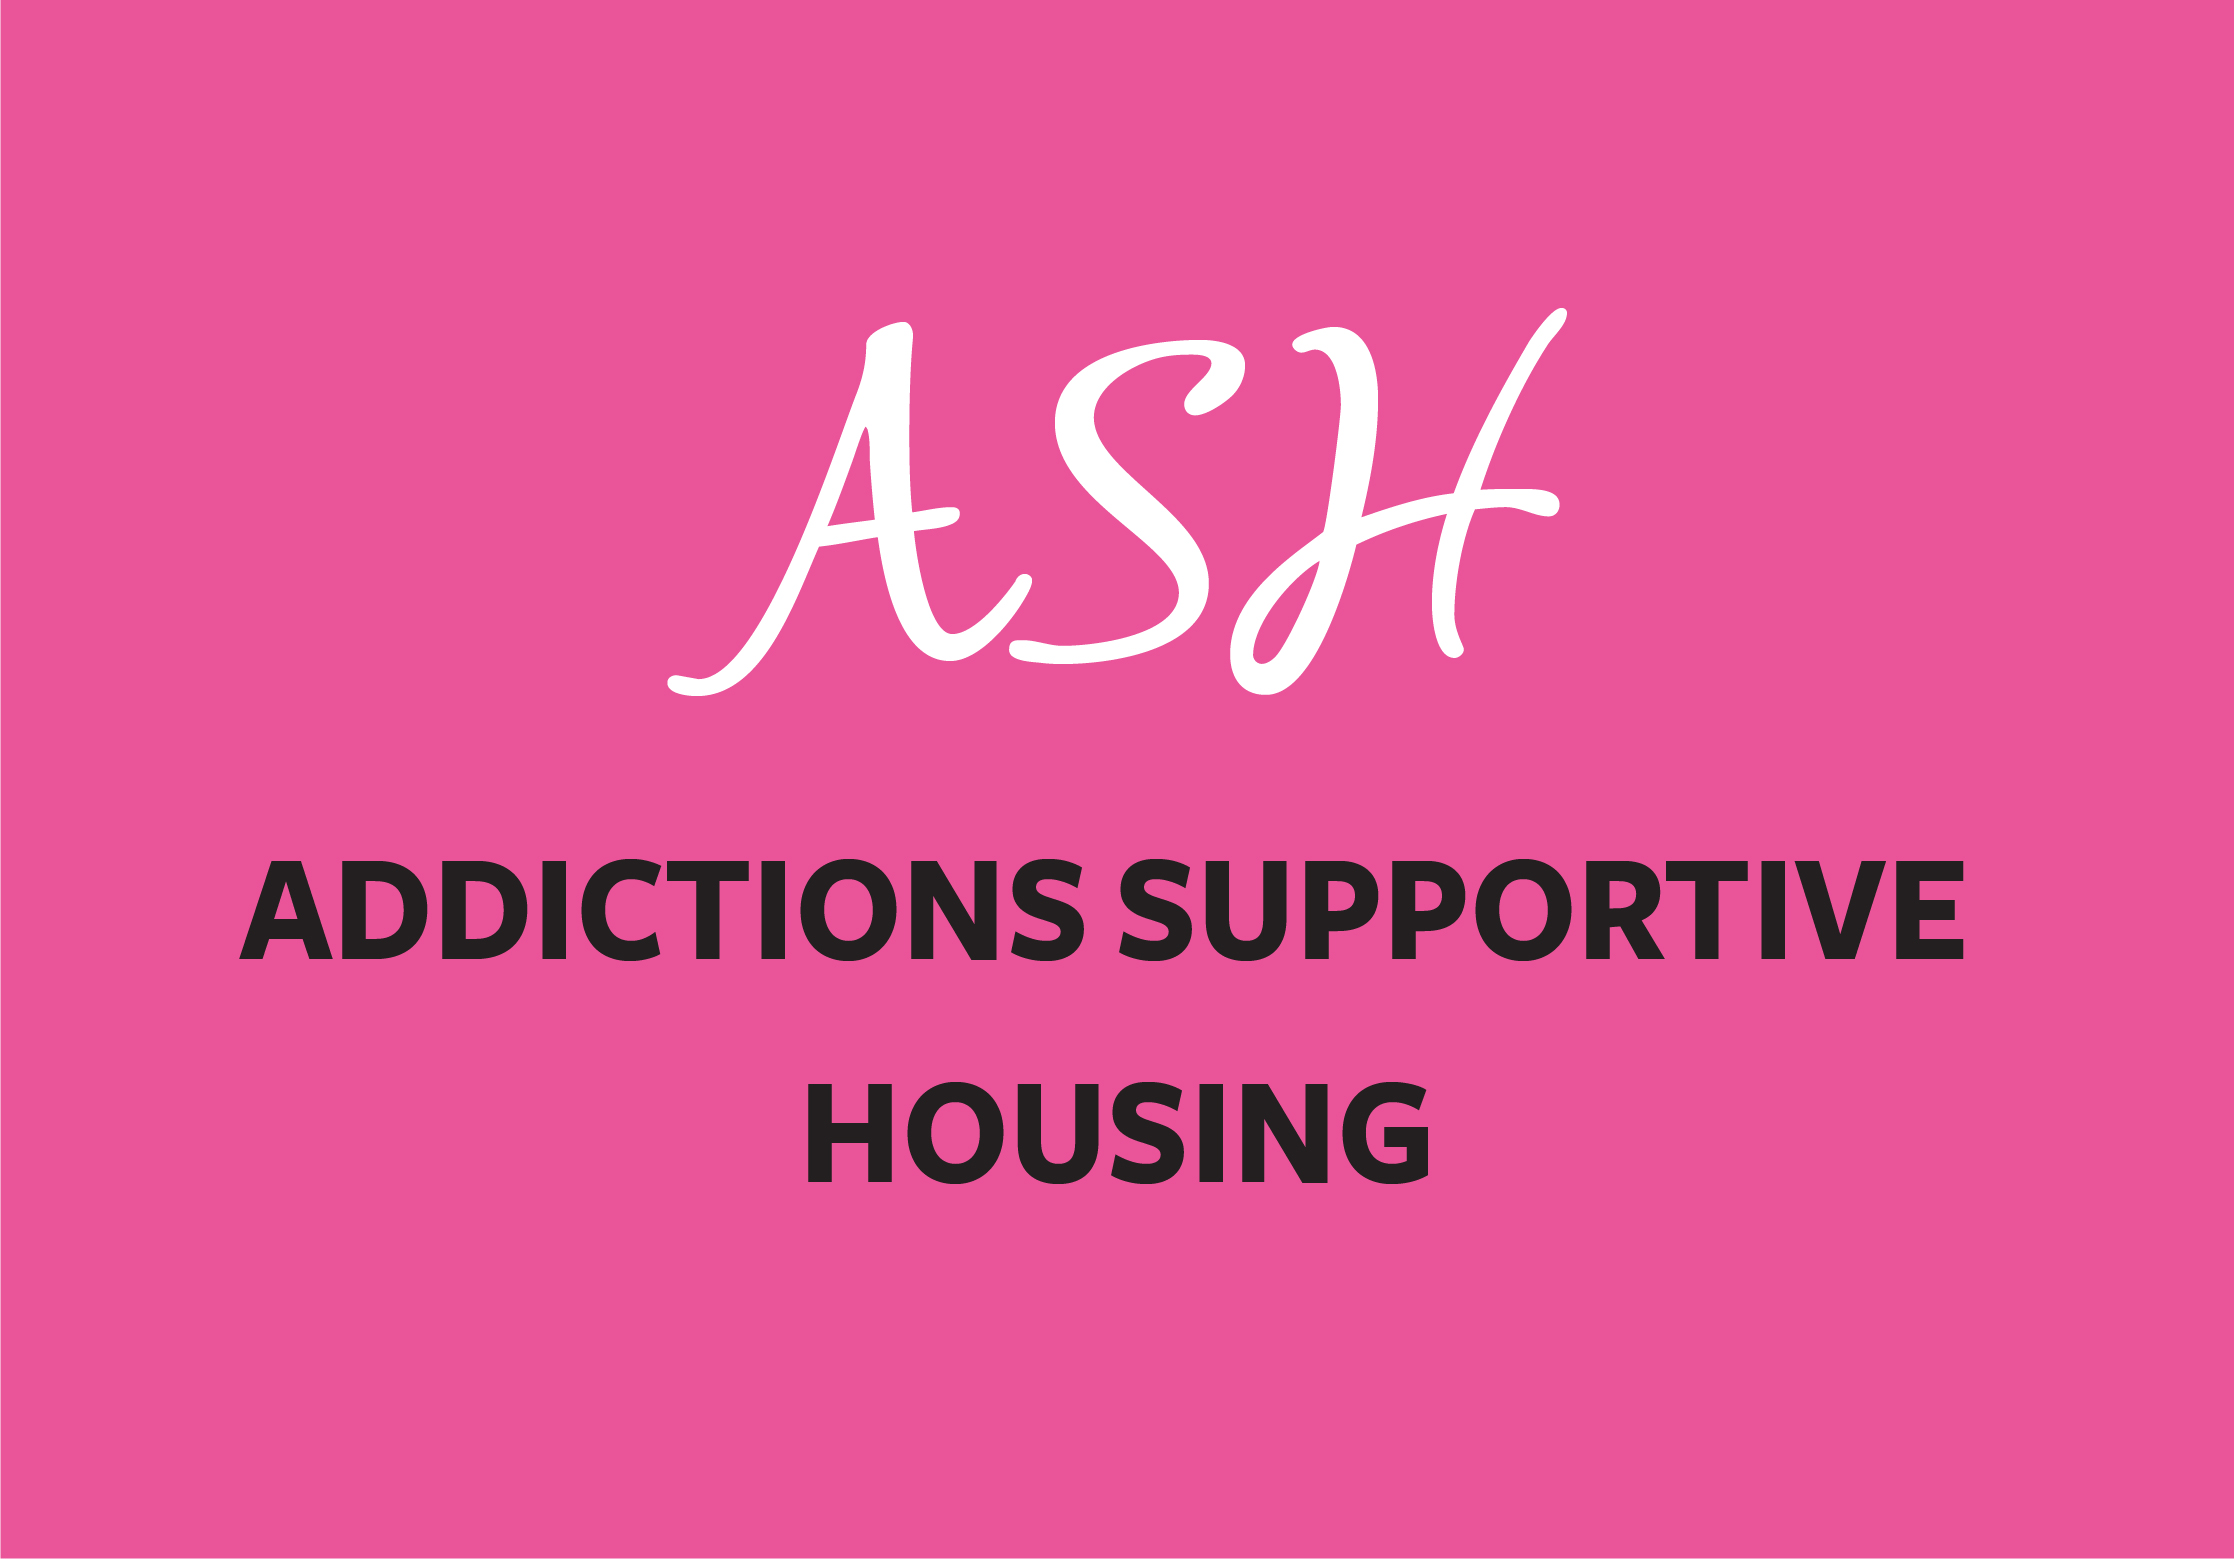 Link to Addictions Supportive Housing page